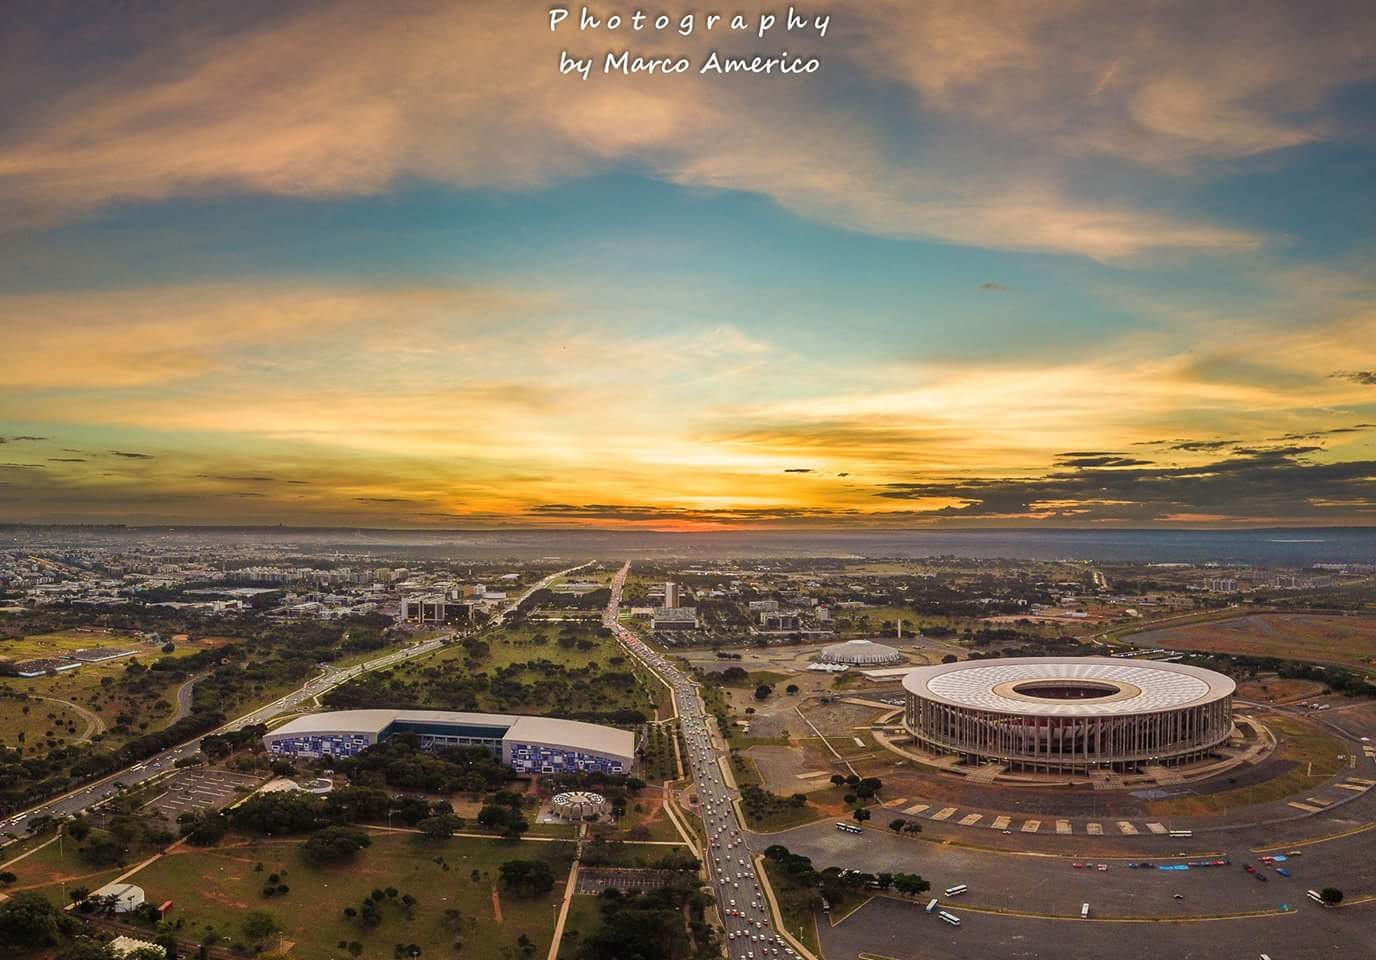 Sunset in Brasilia, Brasil. by Marco Americo